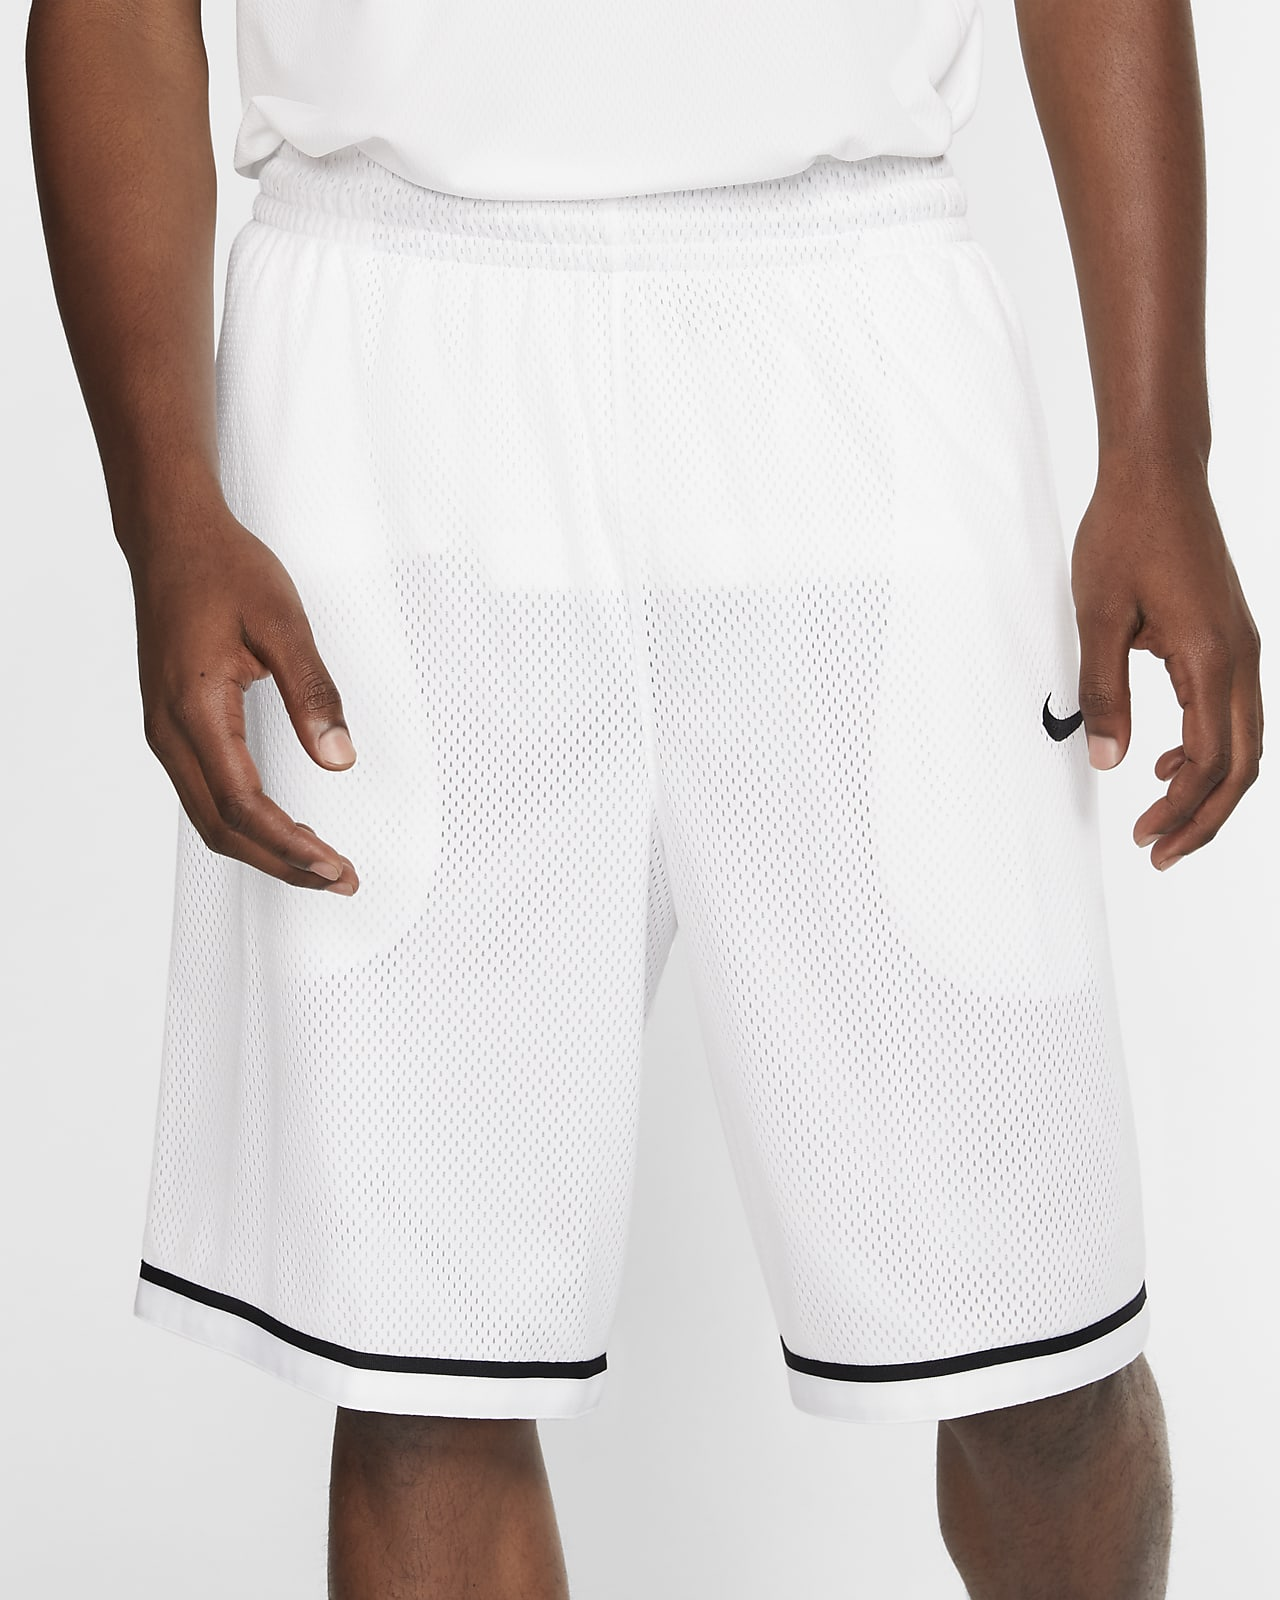 Nike Dri-FIT Classic Men's Basketball Shorts